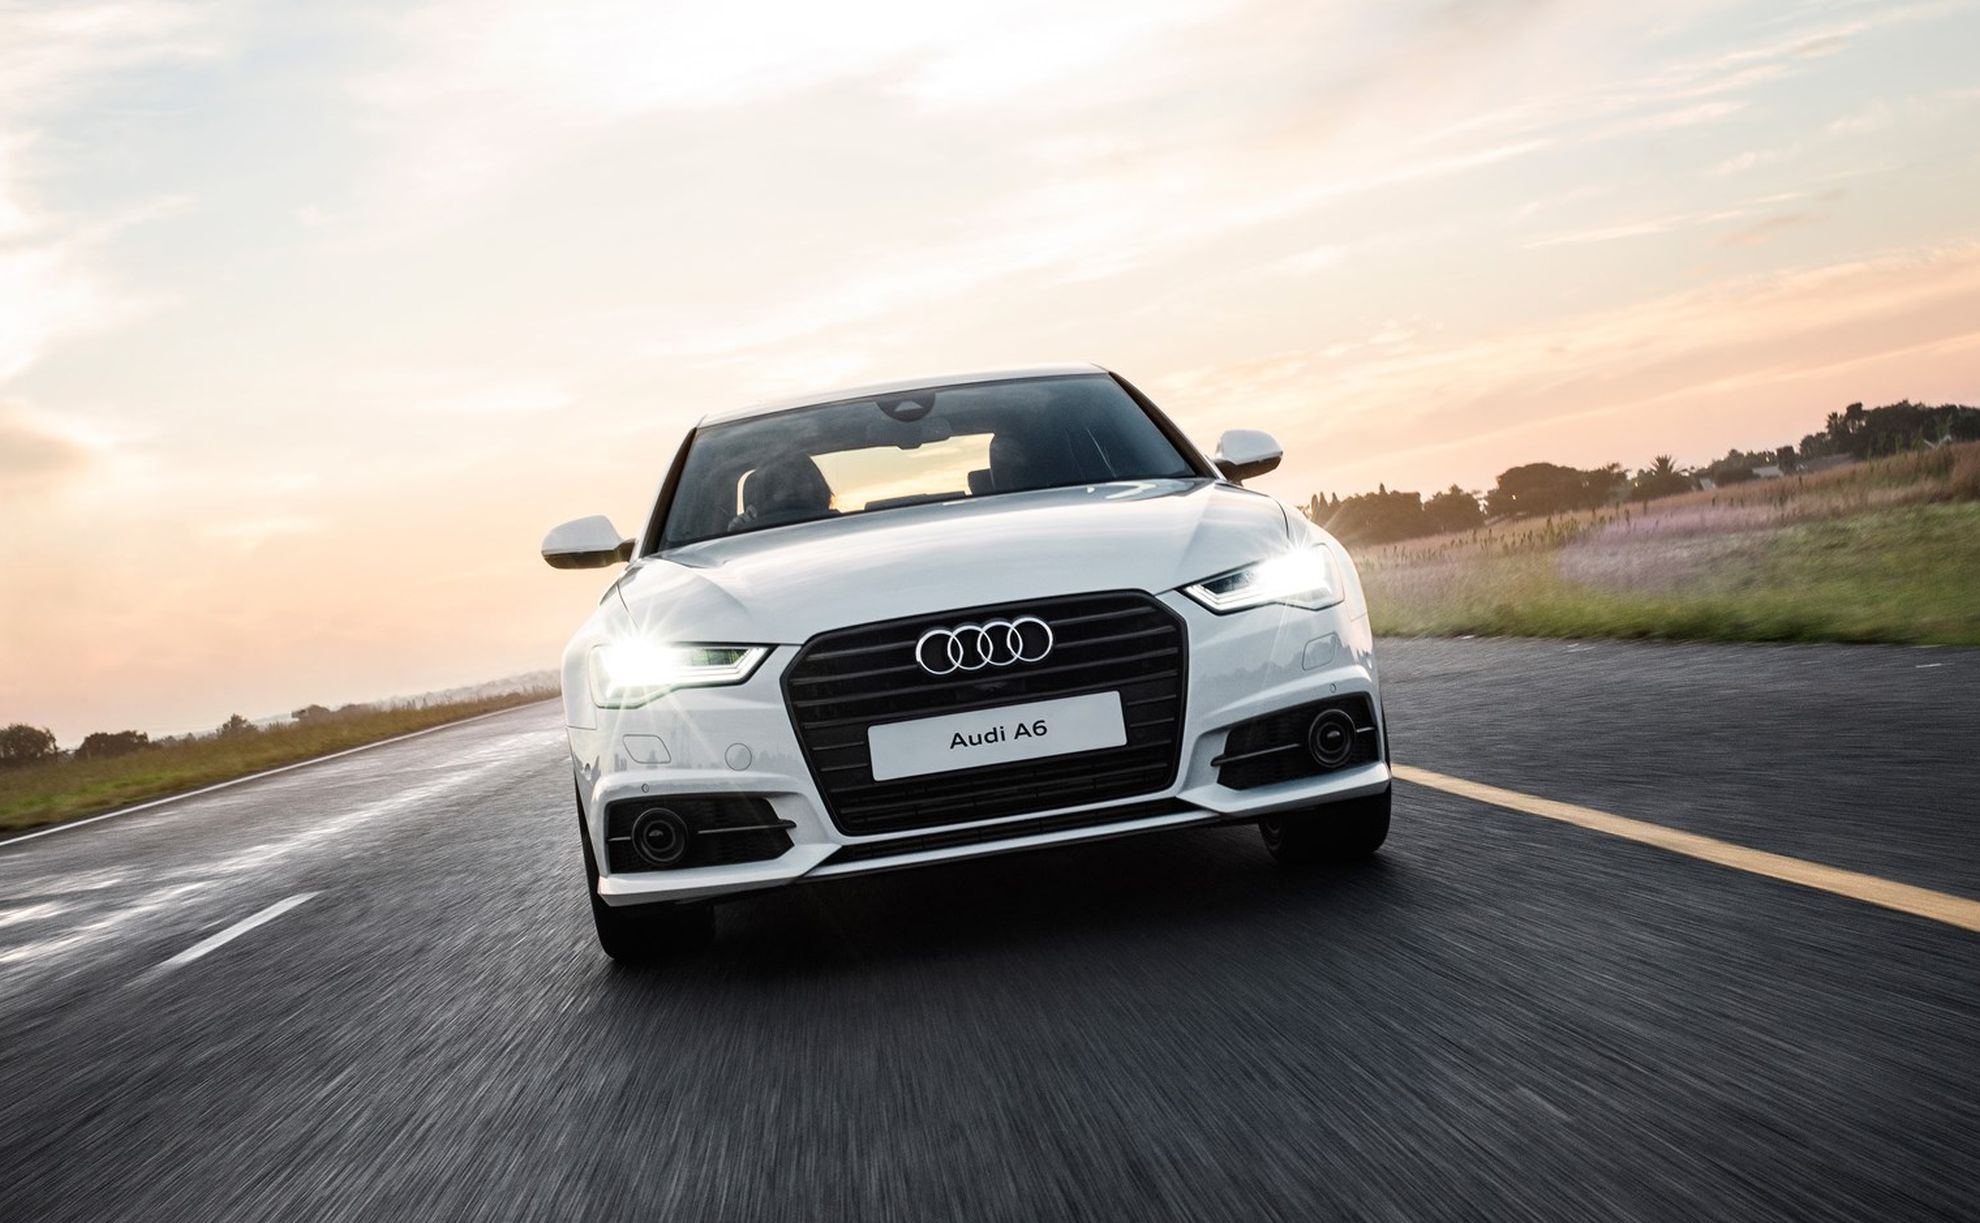 Improved-power-and-styling-the-new-Audi-A6-and-Audi-A7-Sportback-A6-main